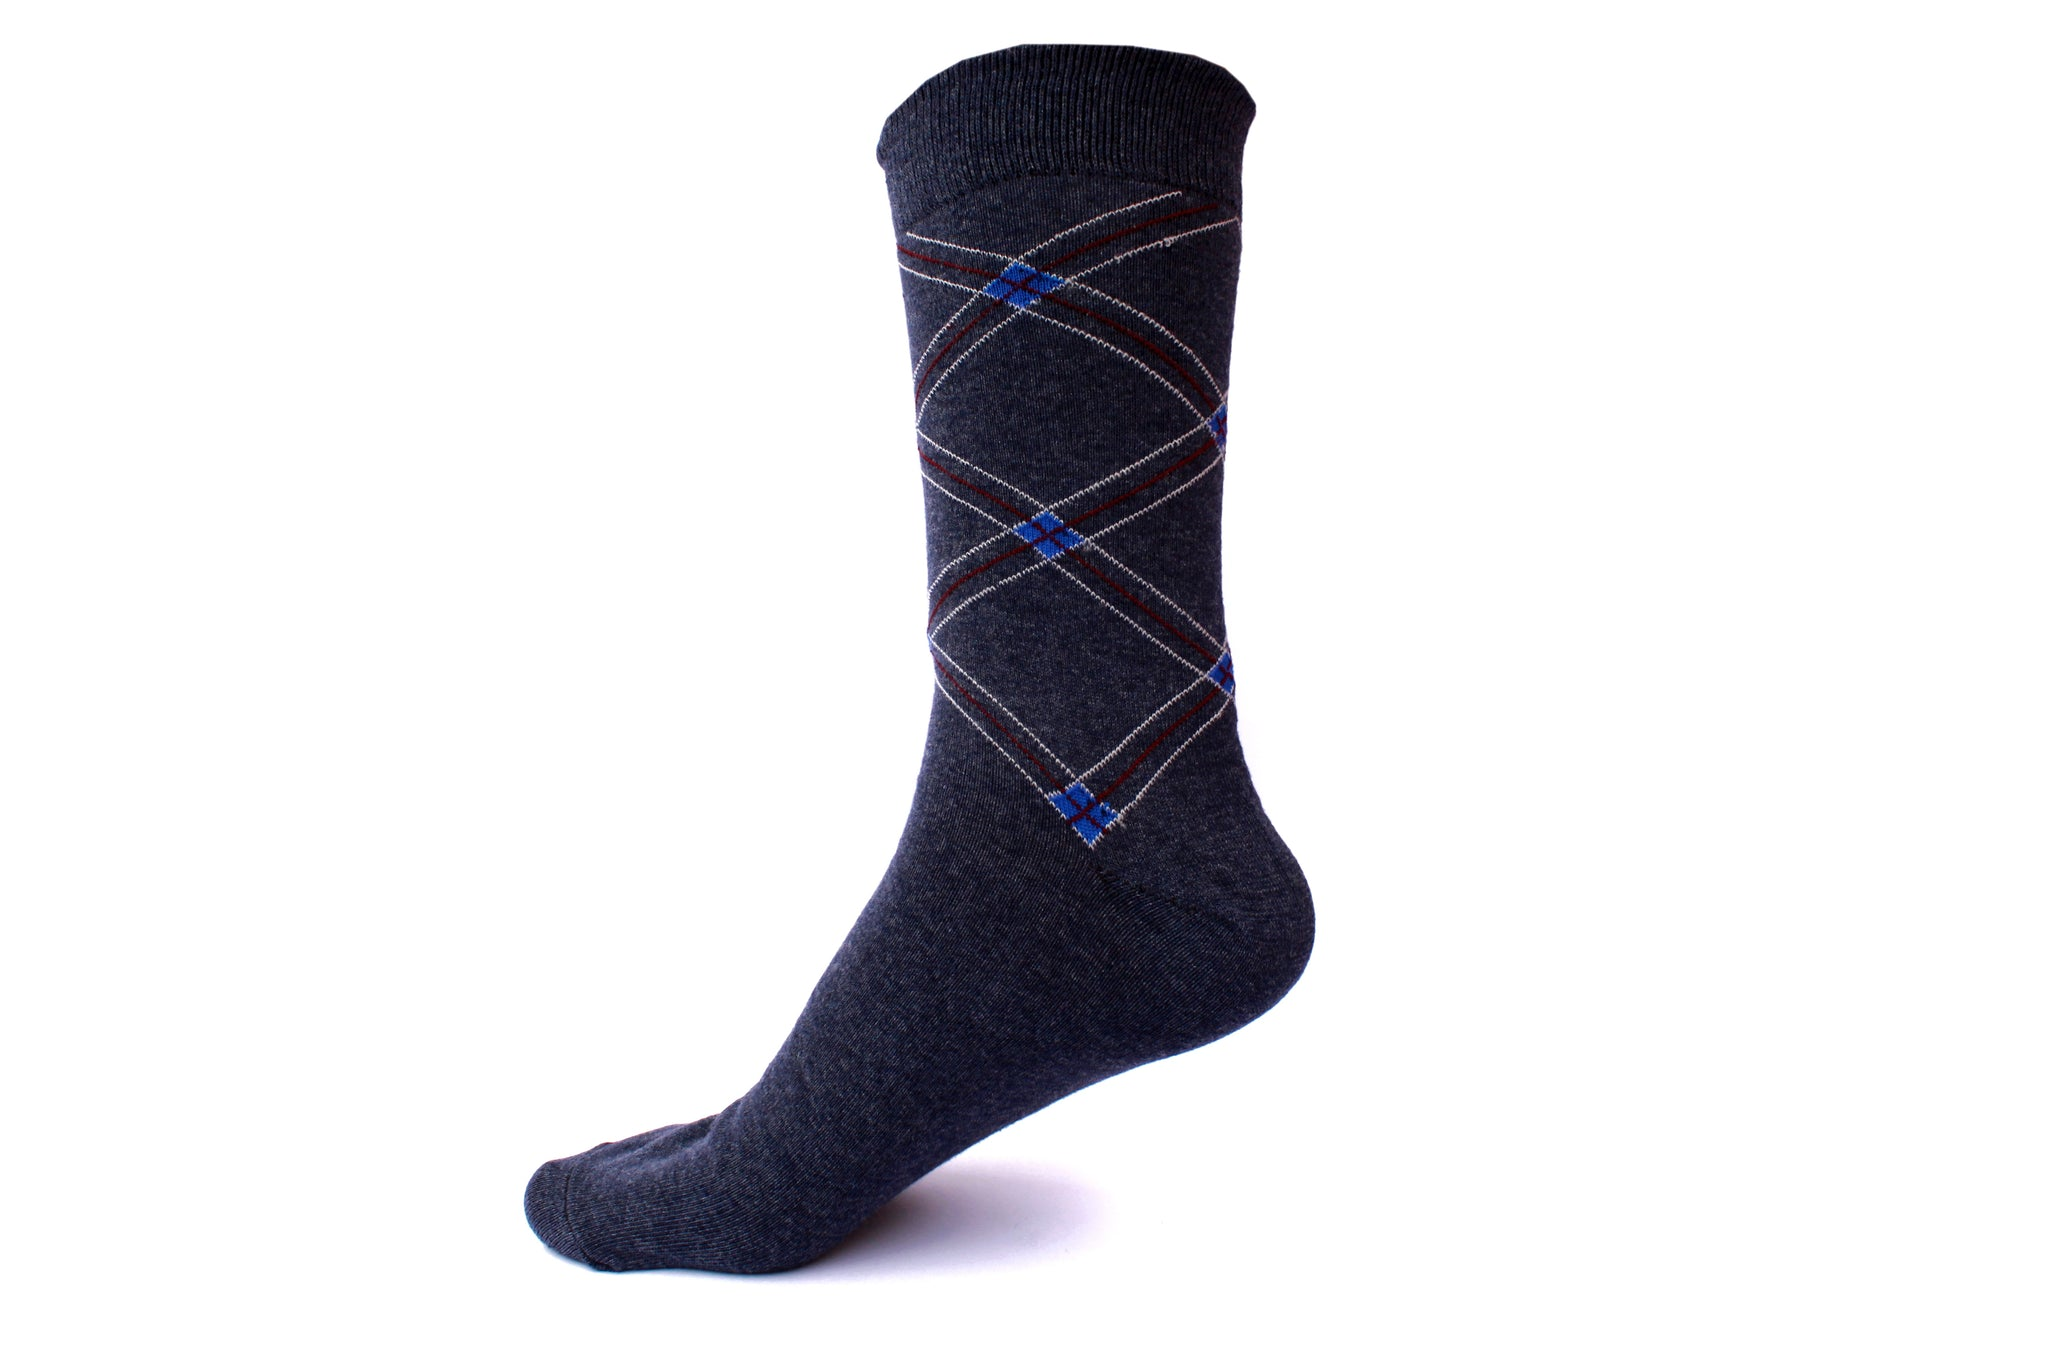 Men's Night-Sky Designer Breathable Socks